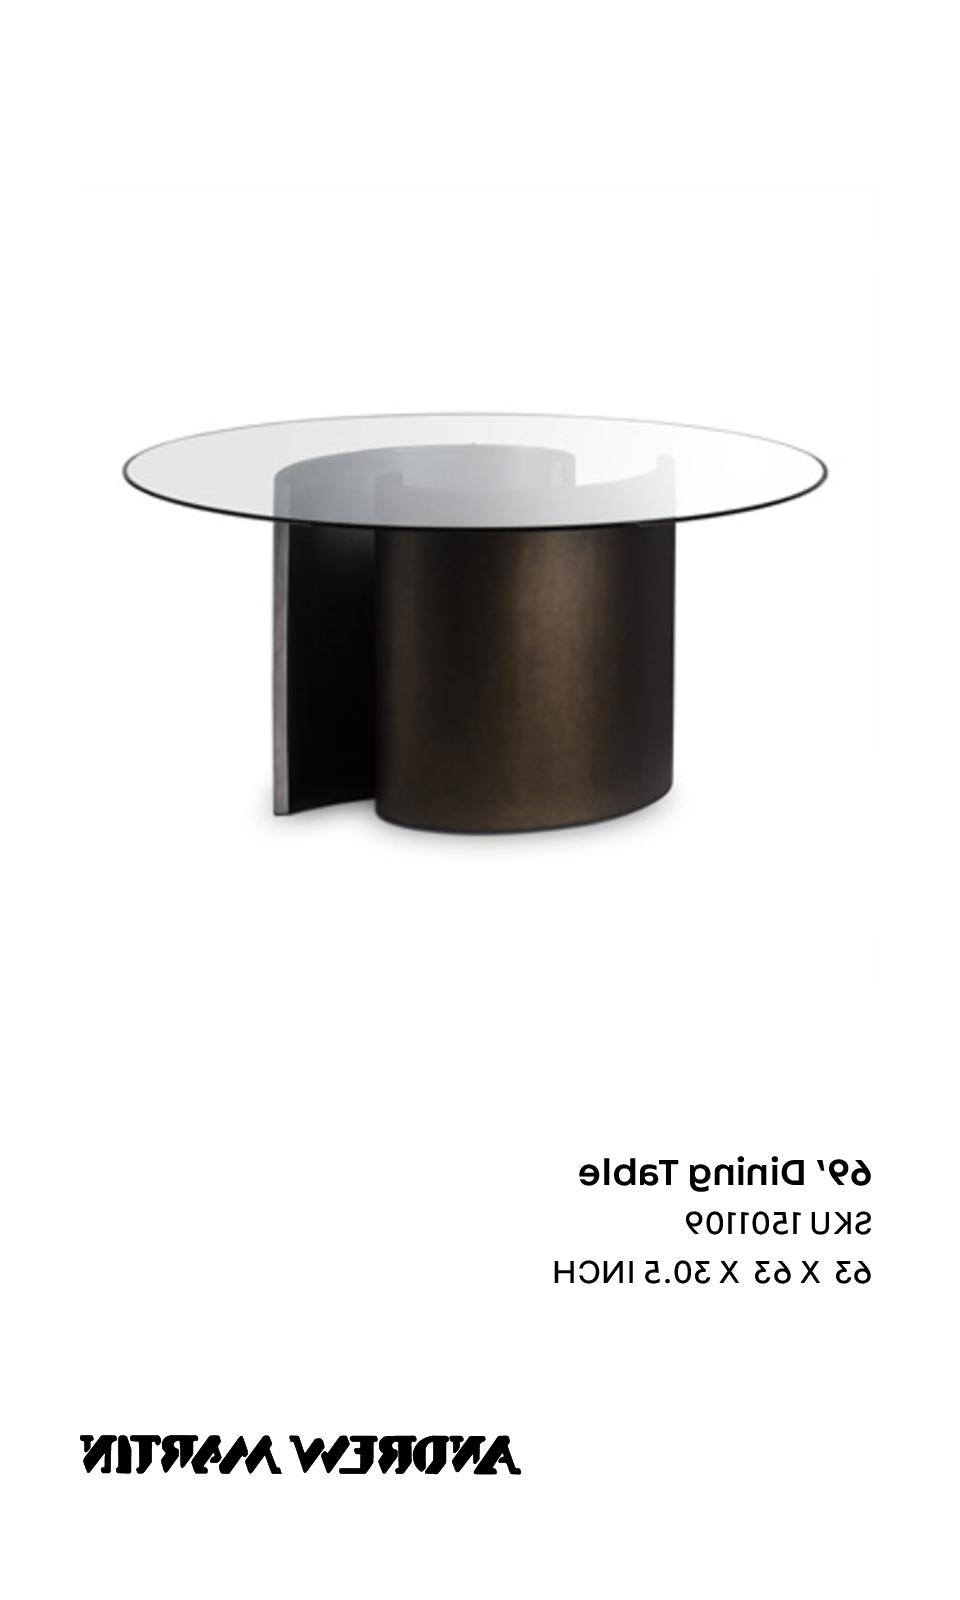 Calaméo – Product Cards Intended For Parsons Grey Solid Surface Top & Brass Base 48x16 Console Tables (View 11 of 19)